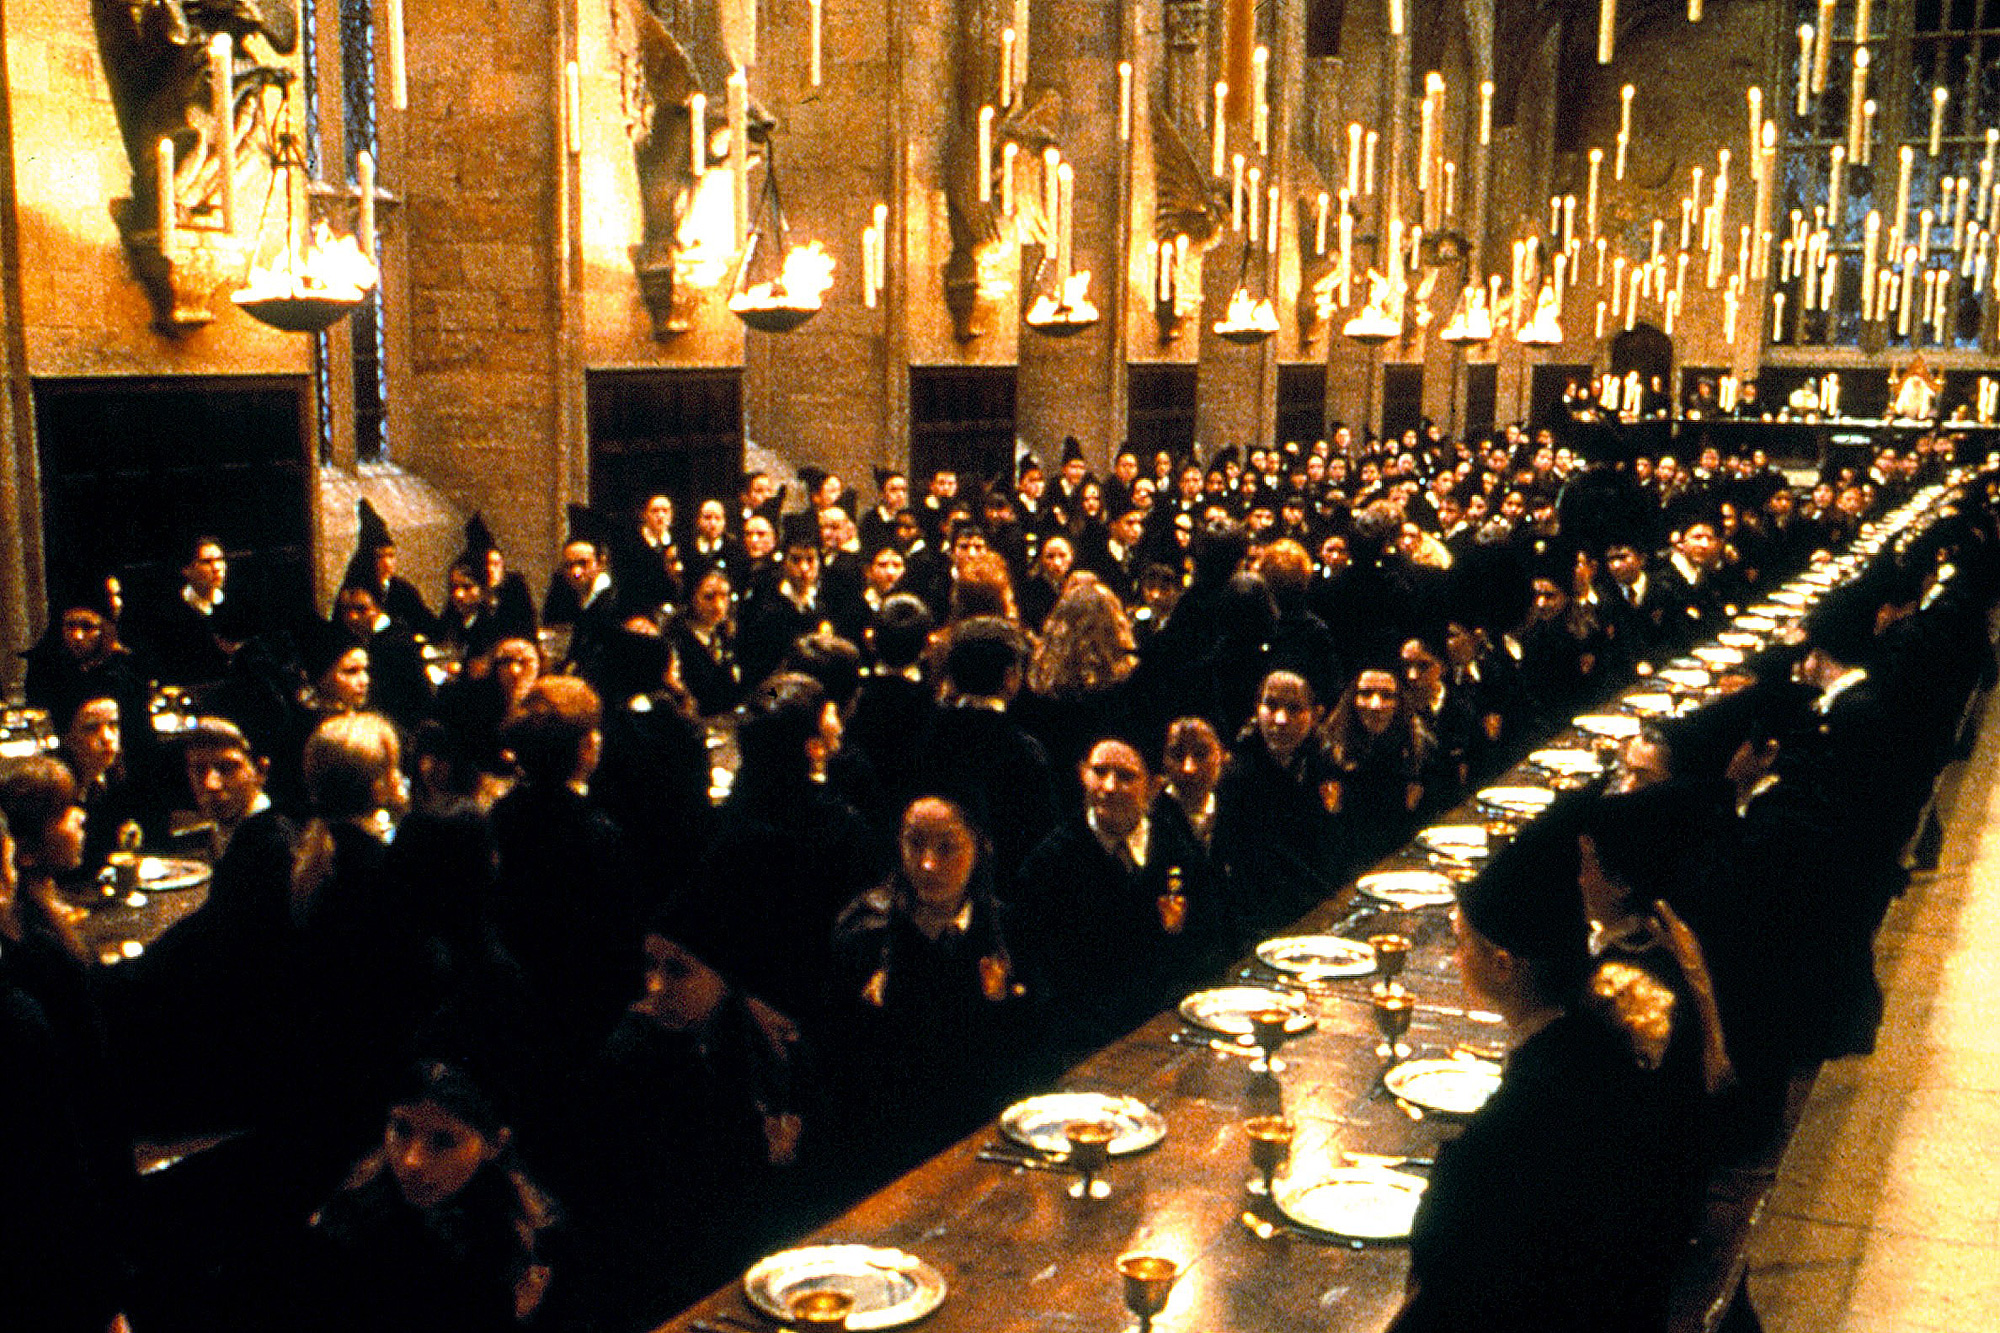 HARRY POTTER AND THE SORCERER'S STONE, Hogwart's main hall during welcome ceremony, 2001